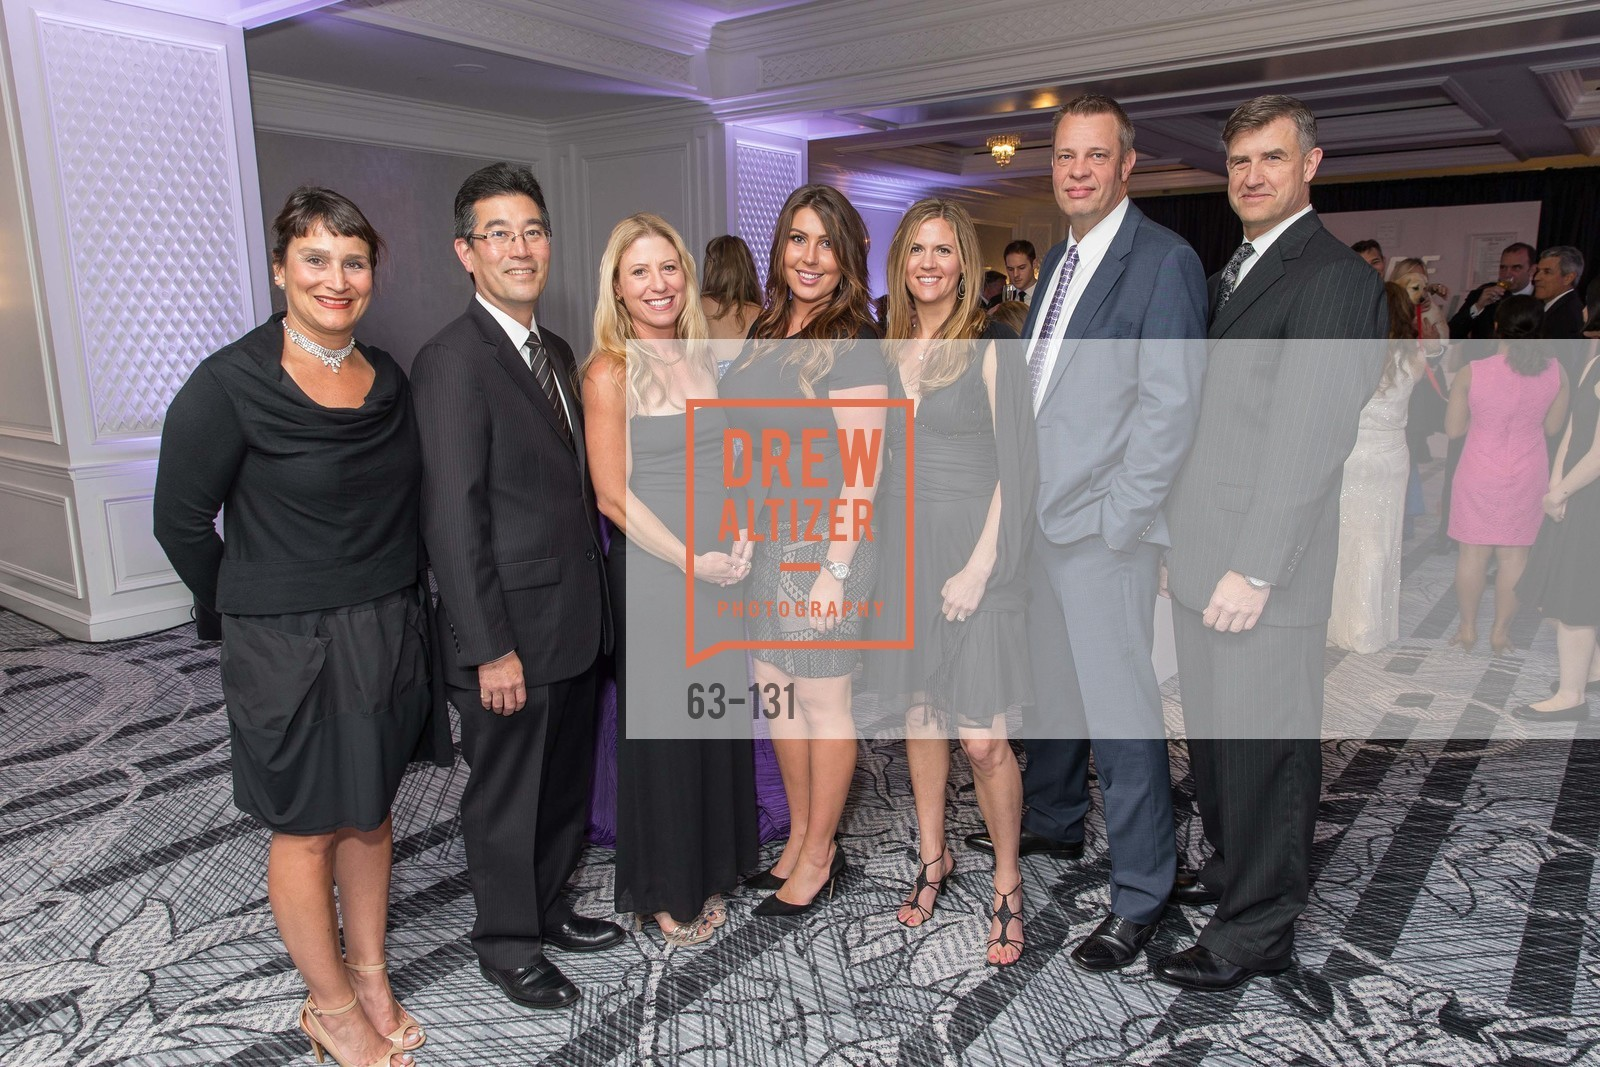 Soraya Petroff, Brian Nakamoto, Sarah Marchi, Erica Johnson, Robin Bjornstad, Peter Kruger, Wayne Mielke, JUVENILE DIABETES RESEARCH FOUNDATION  Hope Gala, The Ritz-Carlton, May 29th, 2015,Drew Altizer, Drew Altizer Photography, full-service agency, private events, San Francisco photographer, photographer california